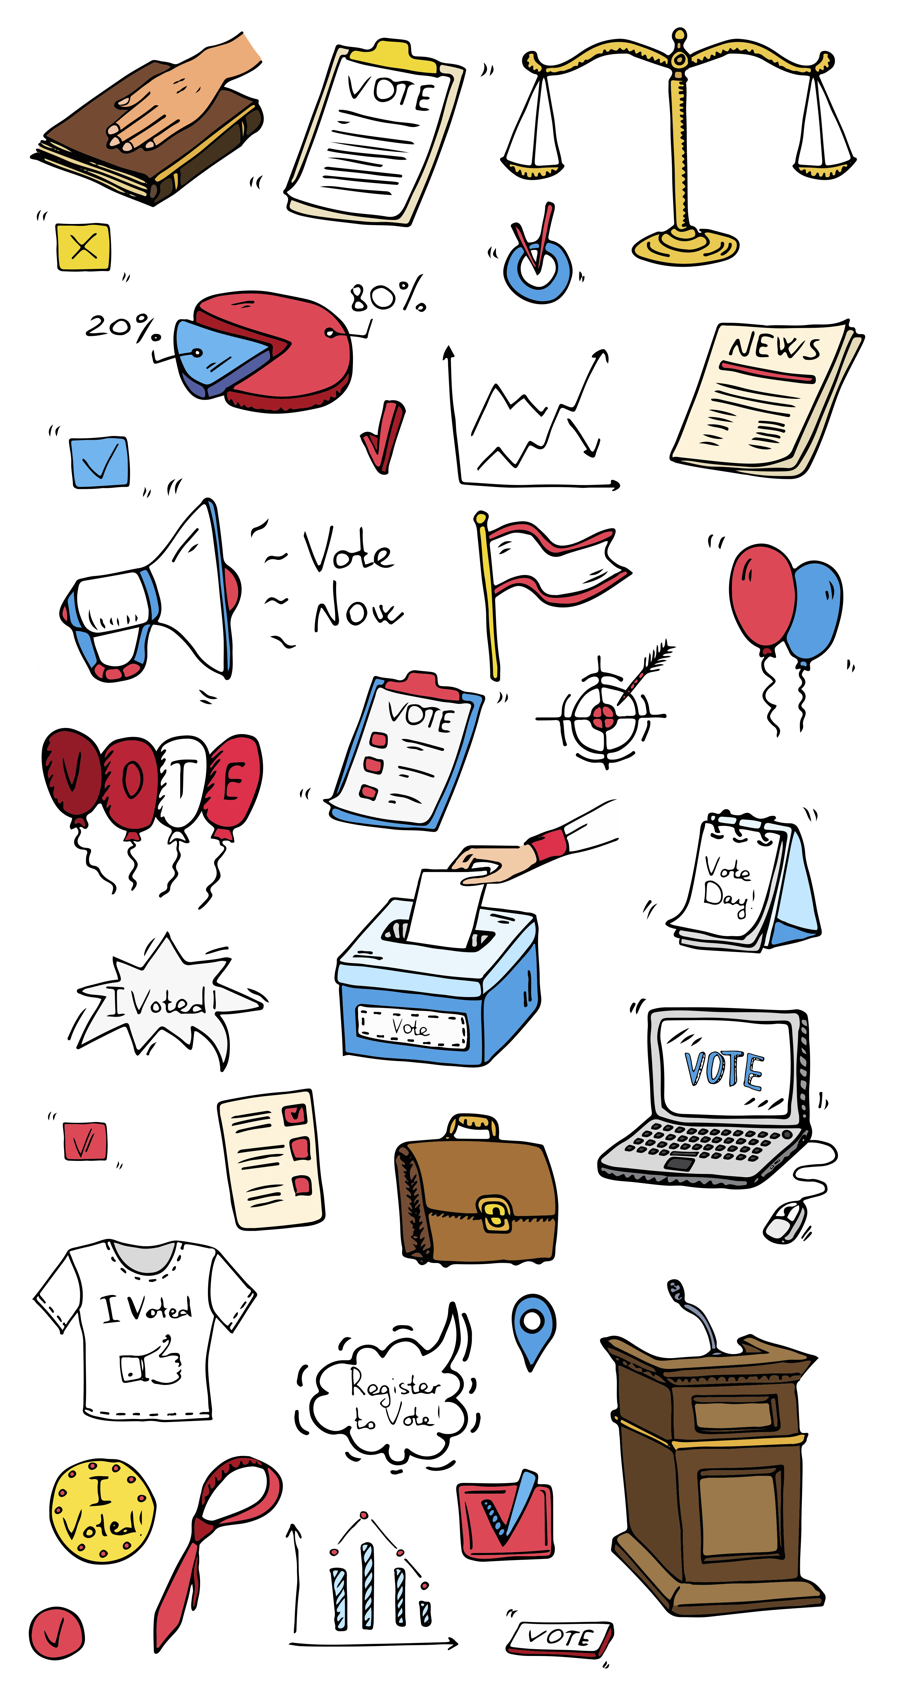 Voting illustration for About Us page